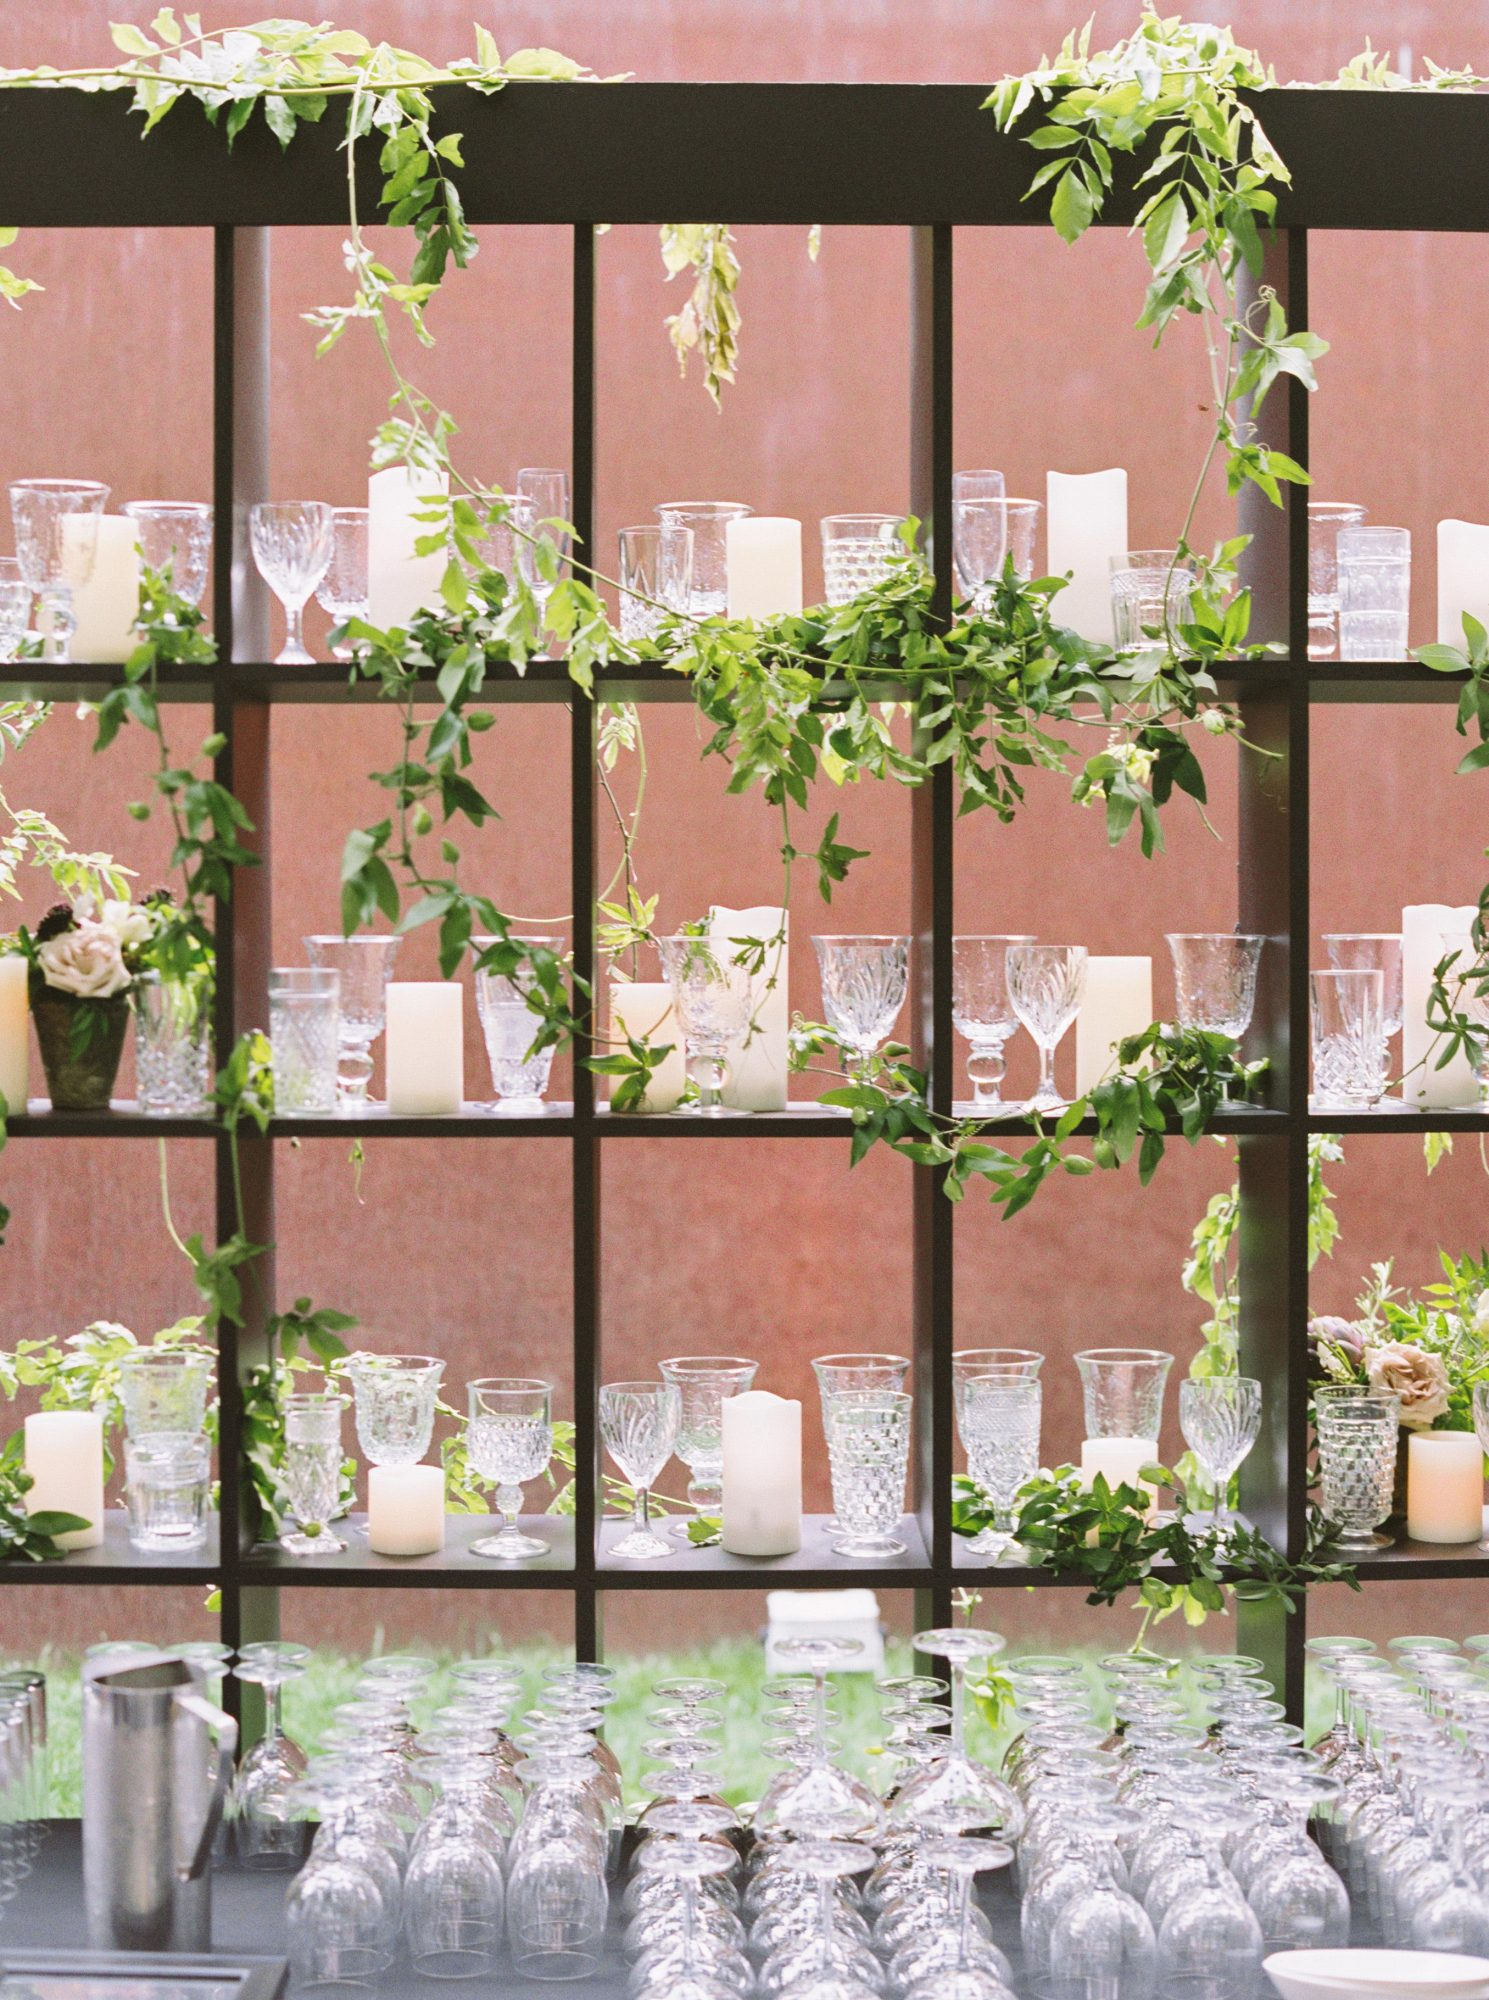 glassware and shelving